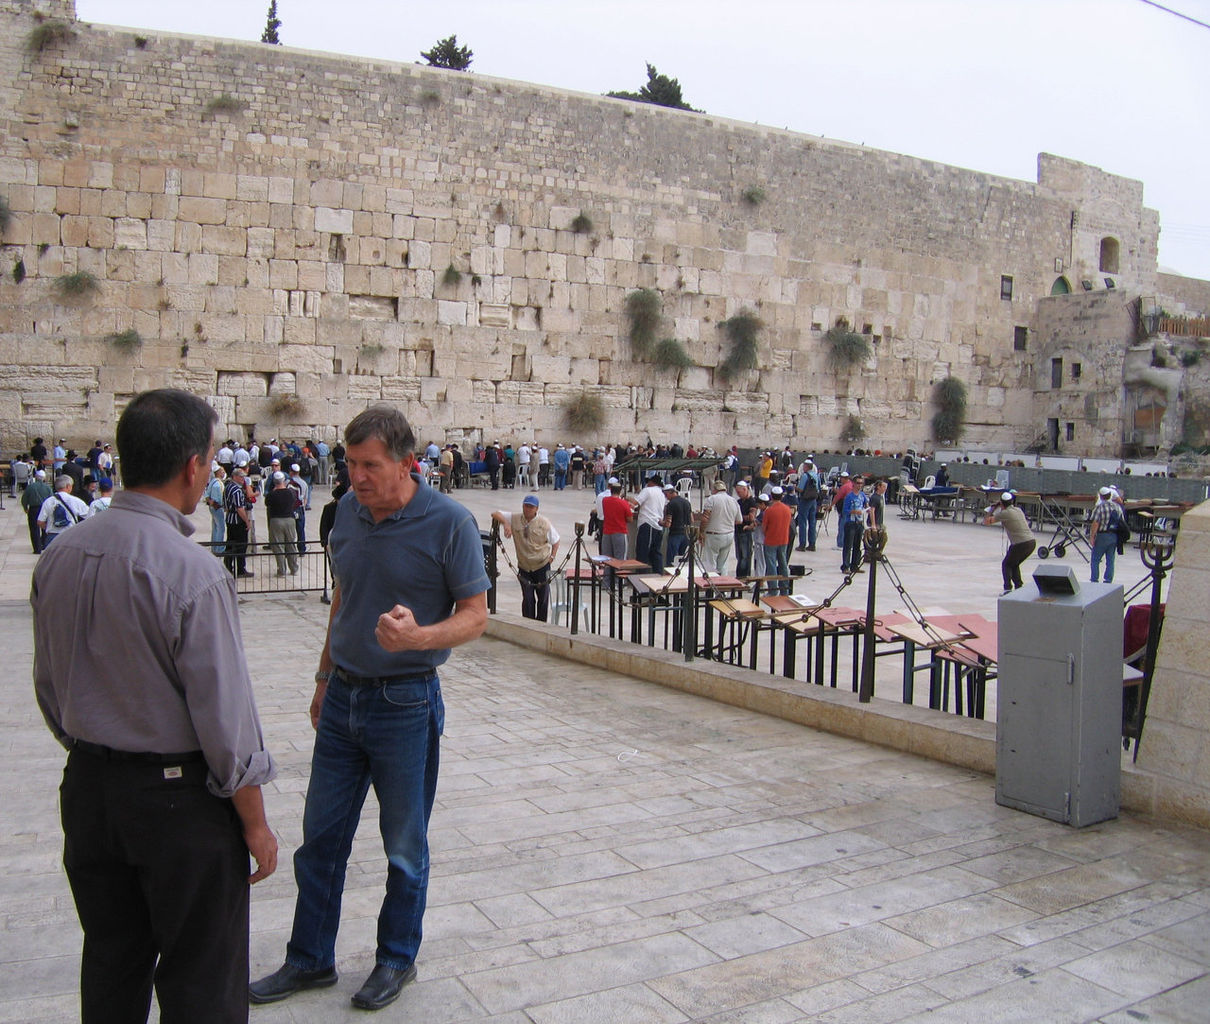 On location in Jerusalem